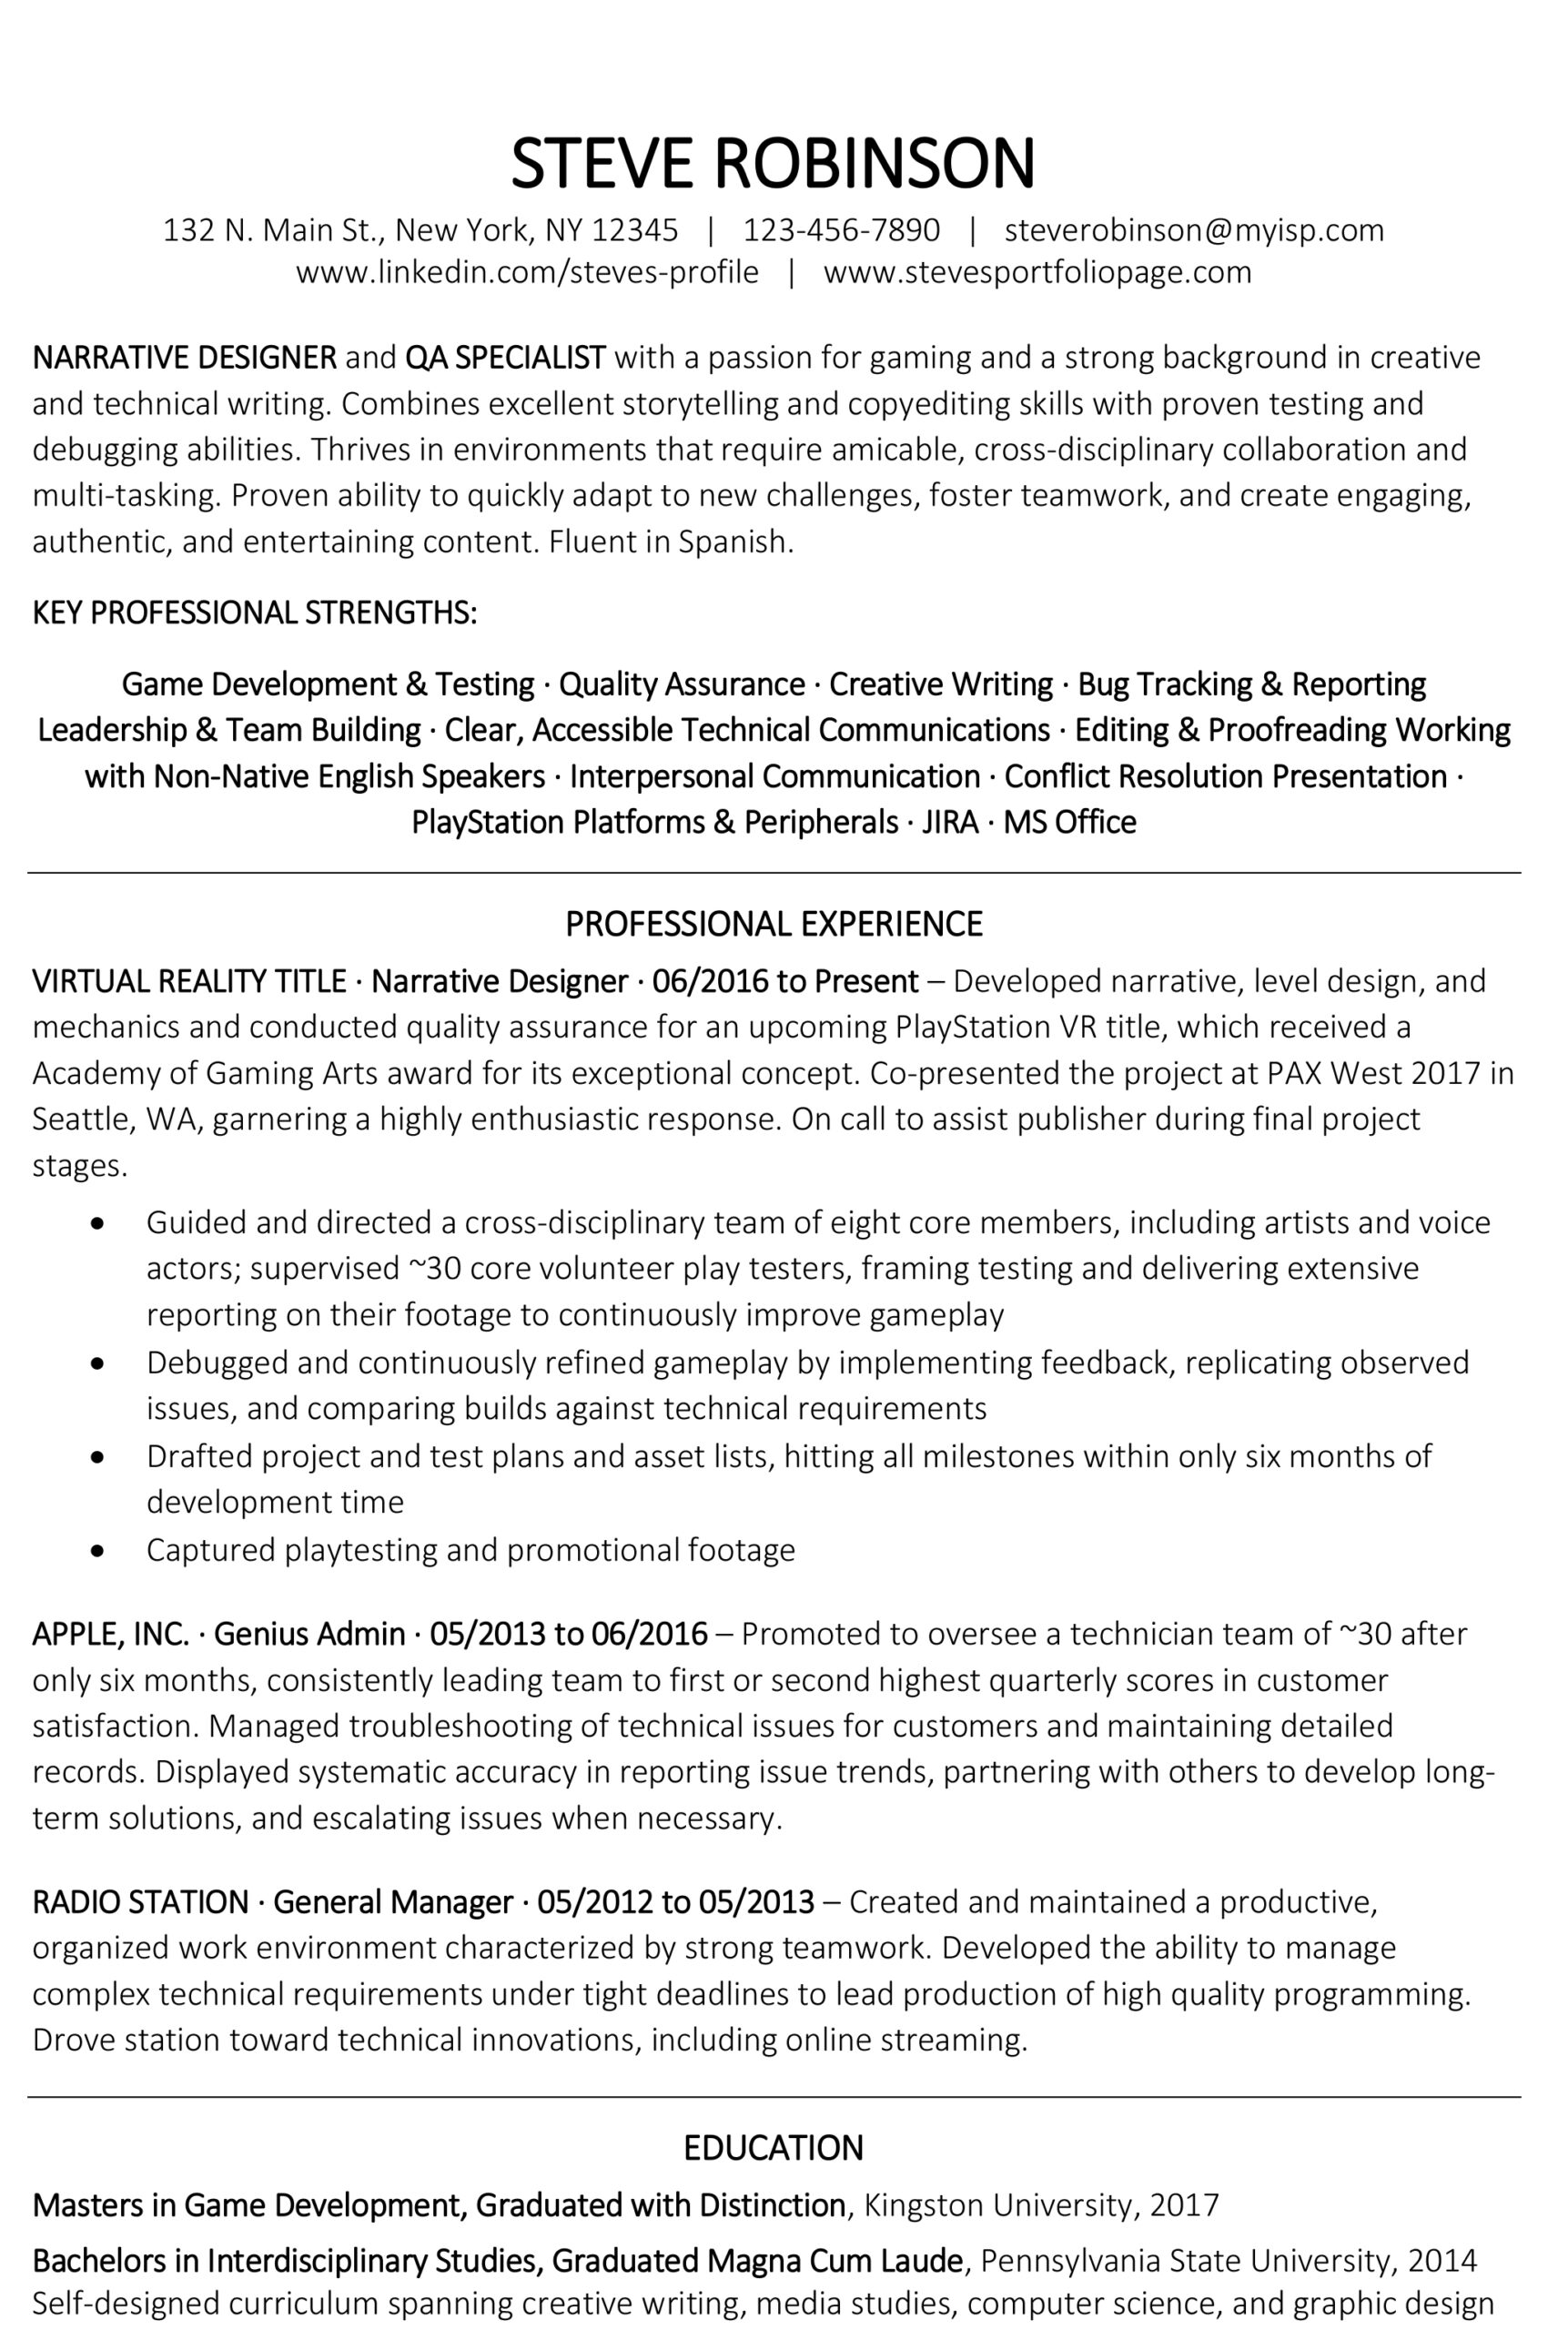 resume examples and tips oracle resumes good strengths for recent grad free sample of job Resume Good Strengths For Resume